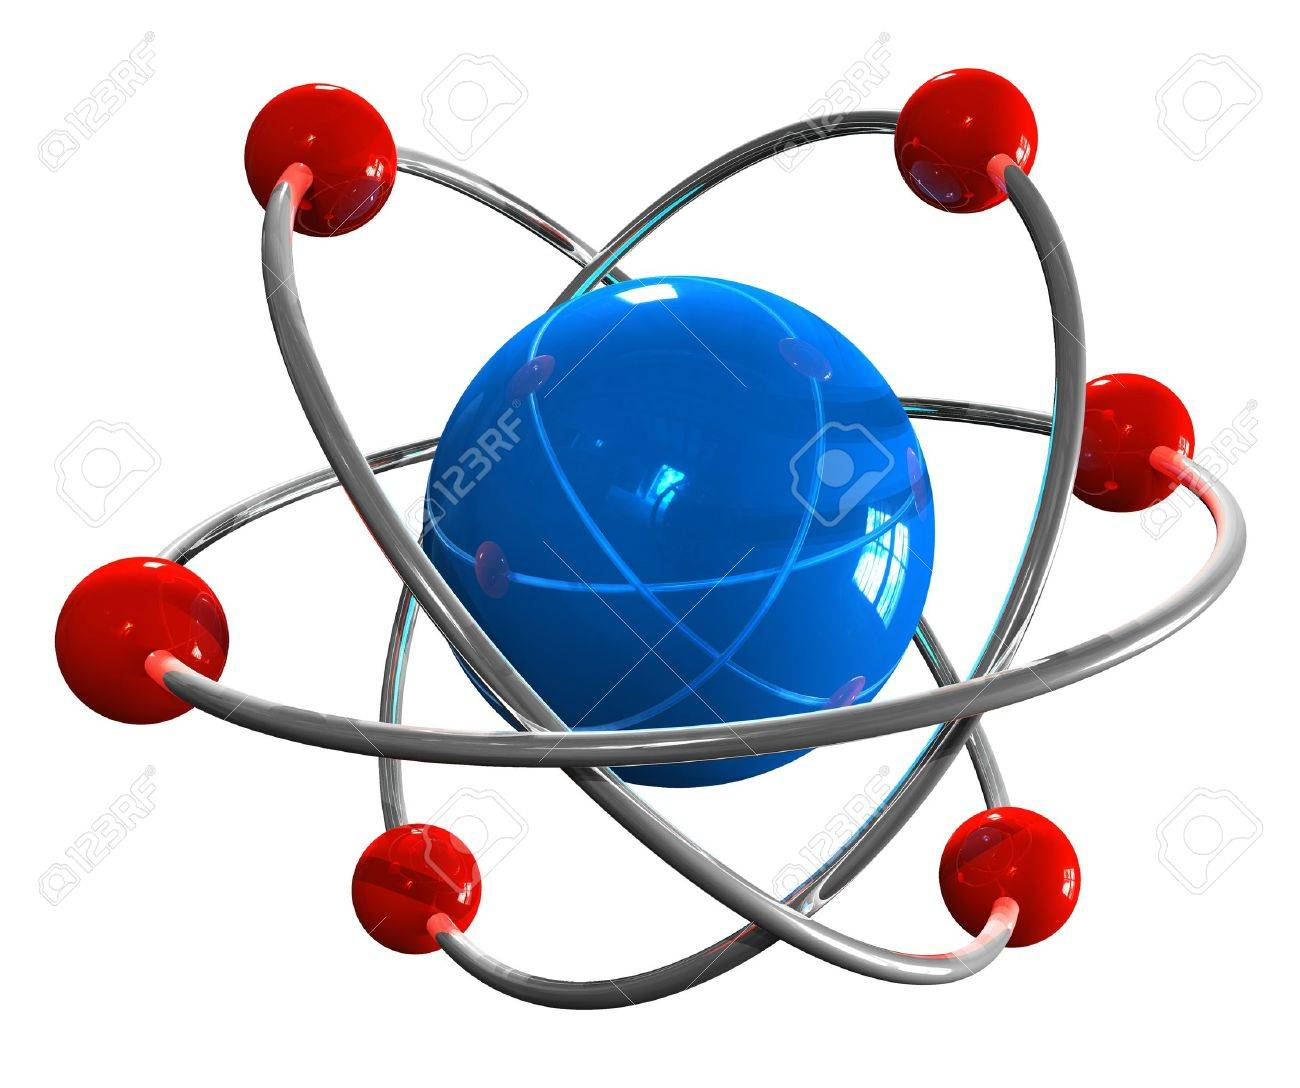 hight resolution of atom model stock photo 8445248